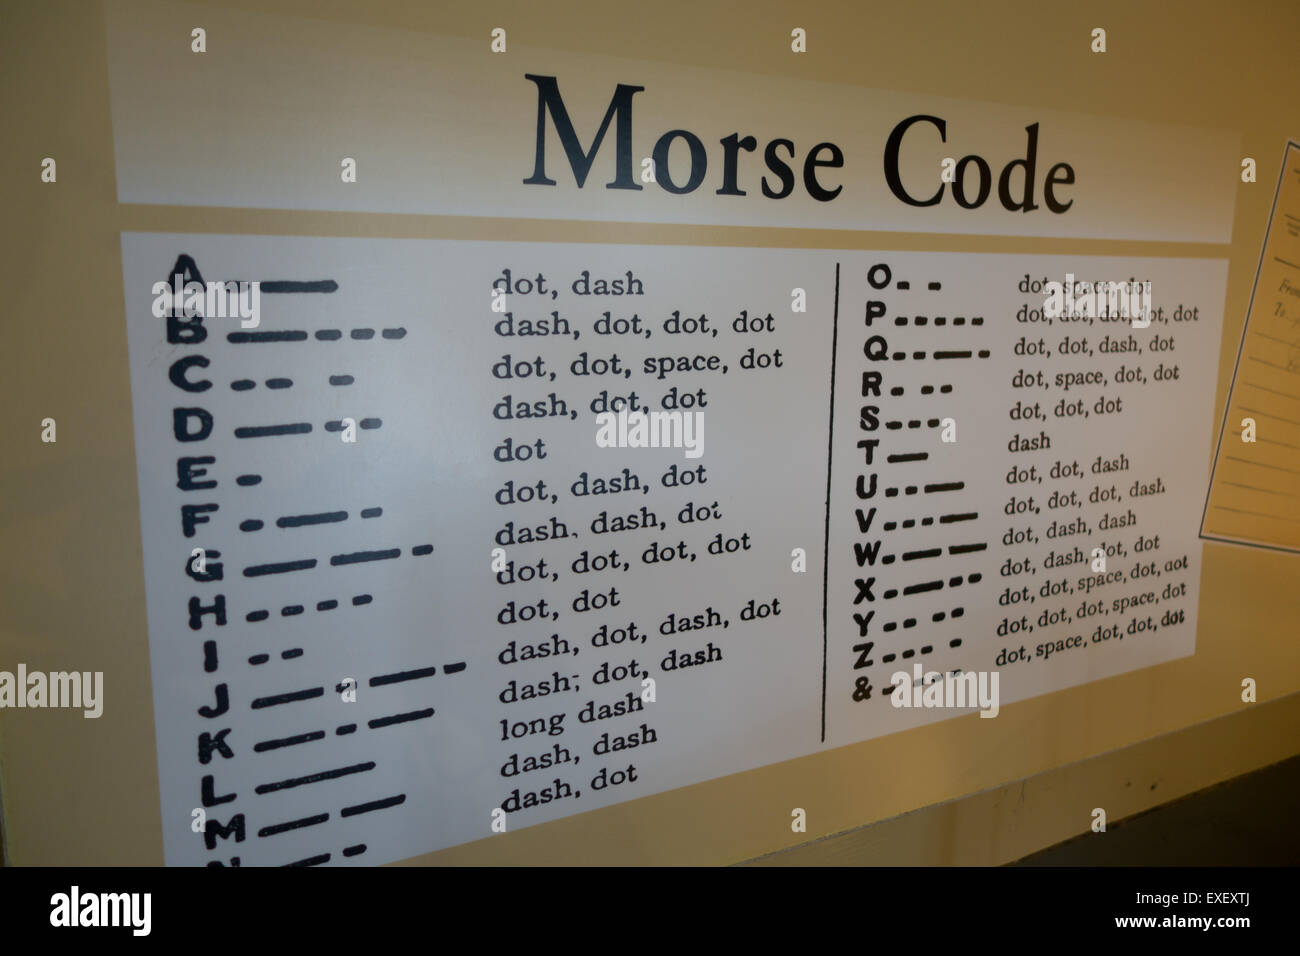 morse code dash at 20 dot at 60